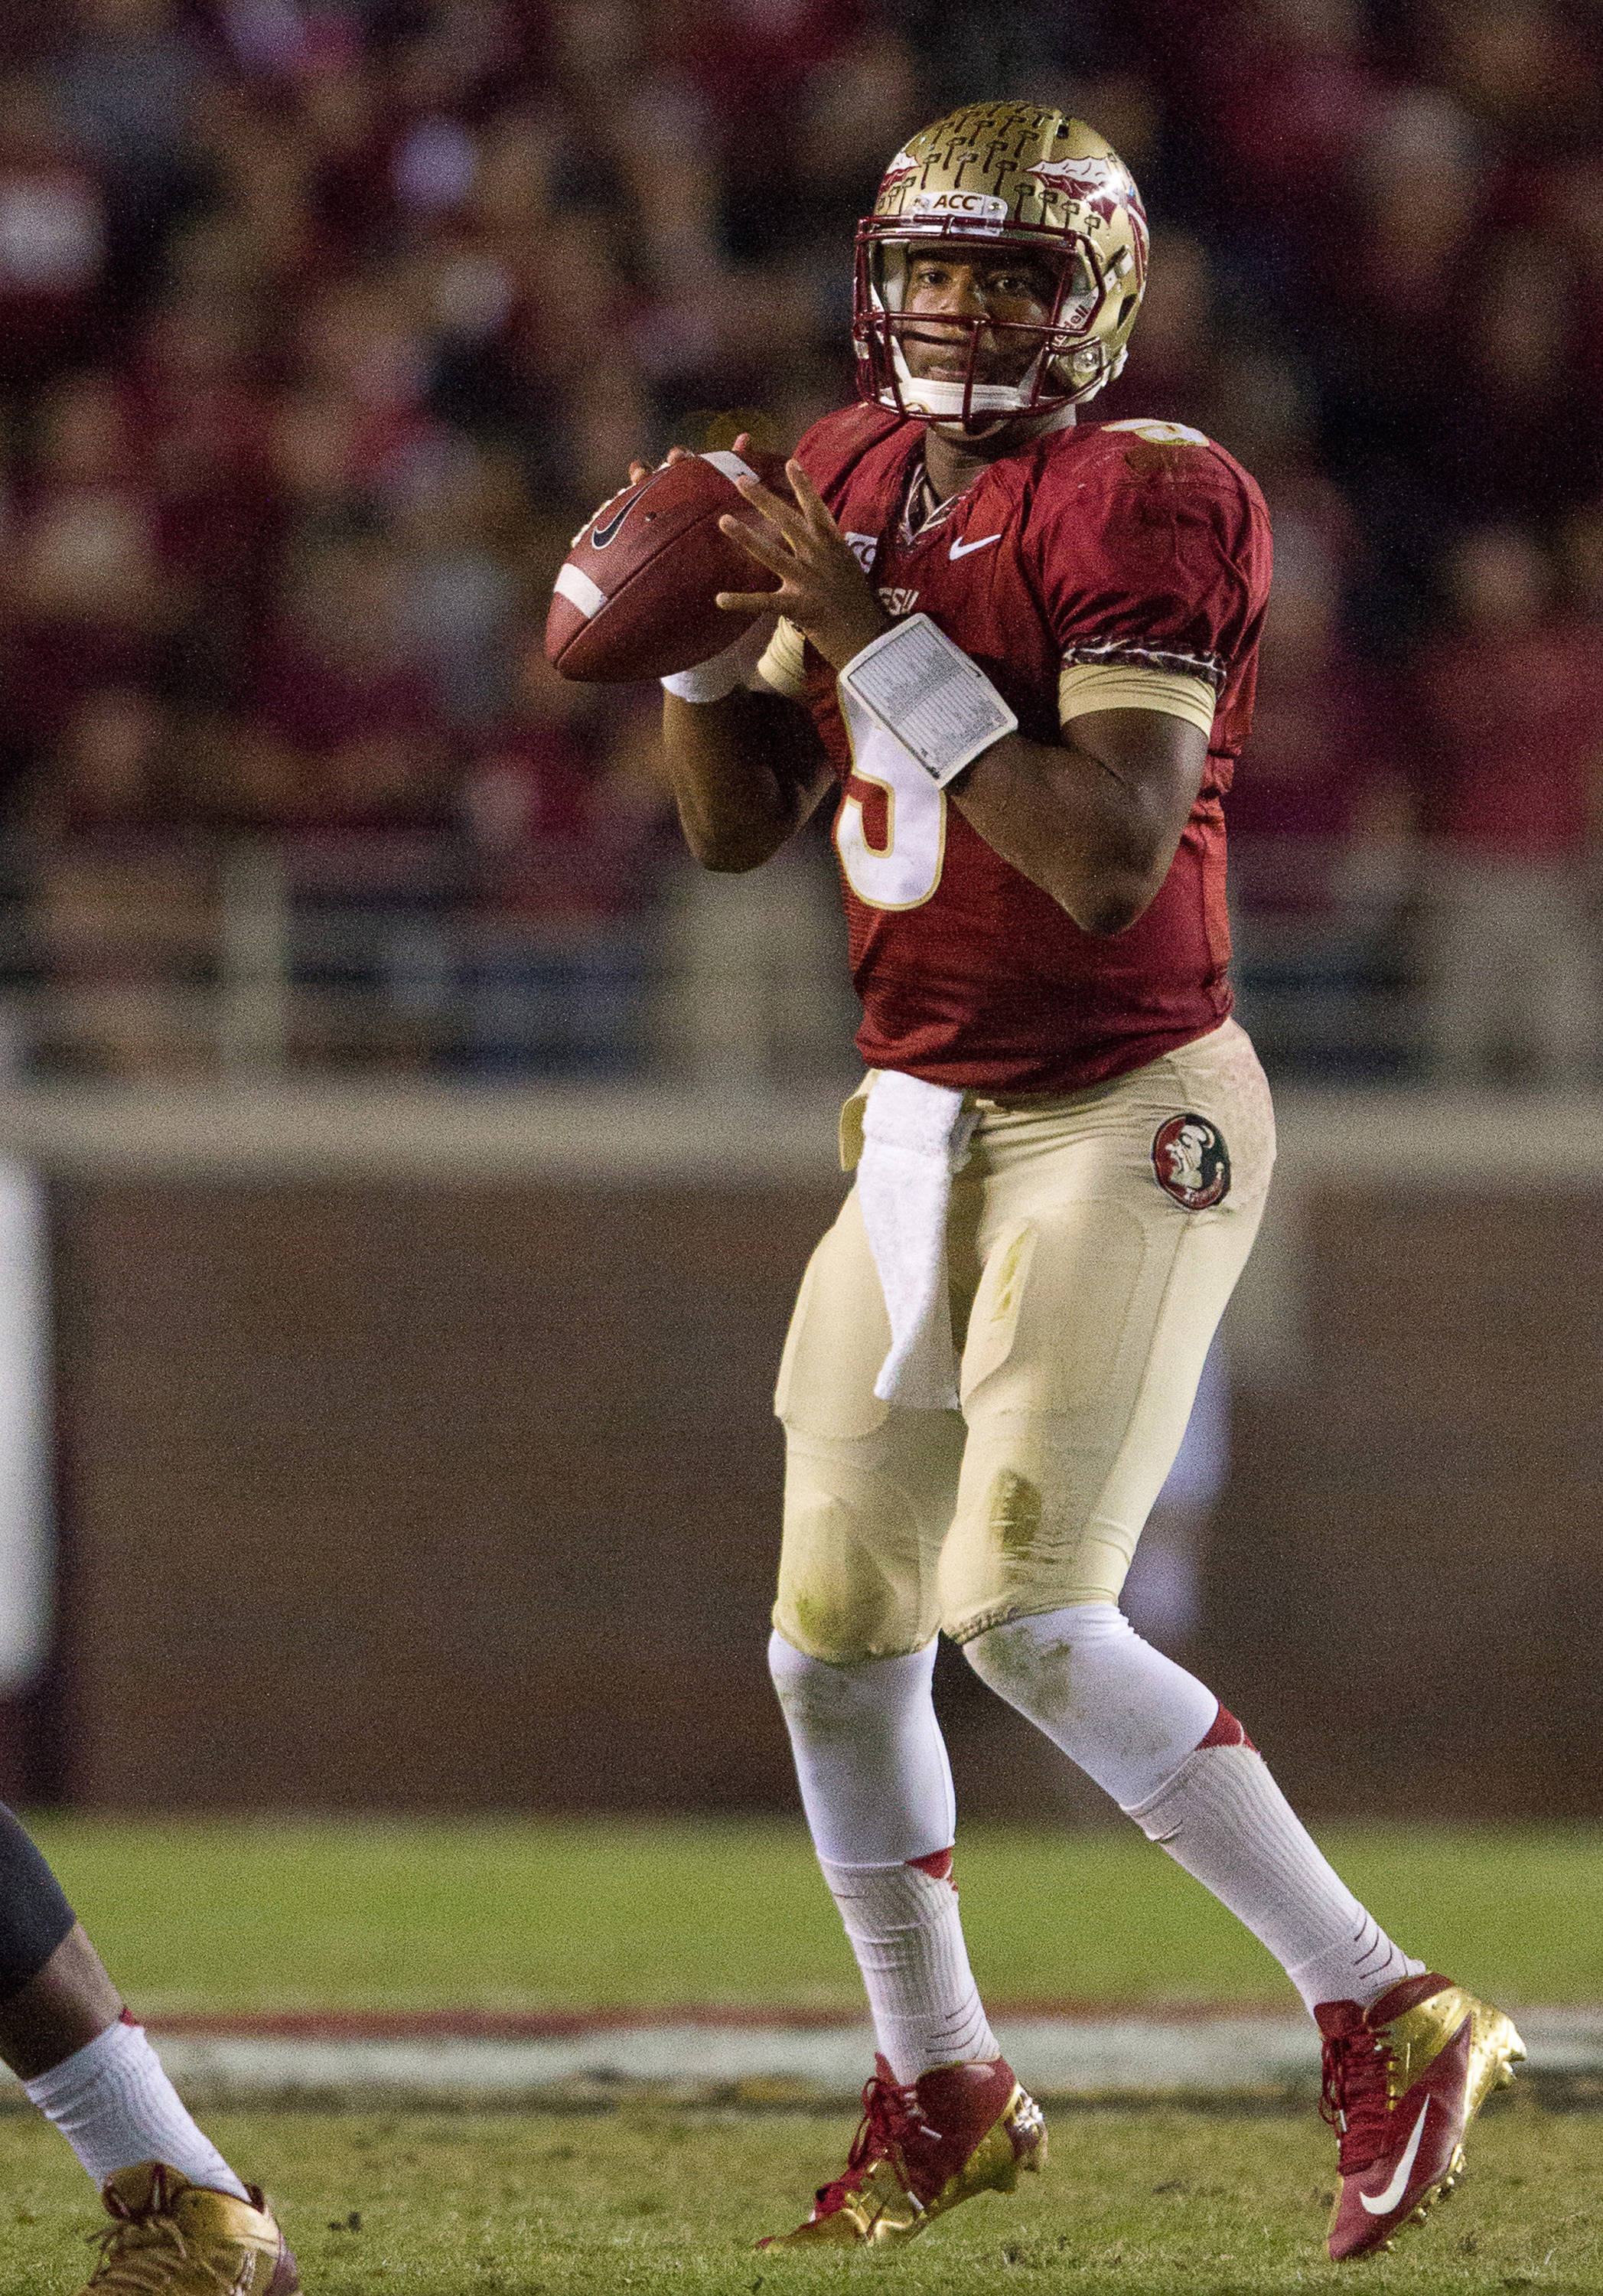 Jameis Winston (5) drops back to pass during FSU football's 41-14 win over Miami on Saturday, November 2, 2013 in Tallahassee, Fla. Photo by Michael Schwarz.